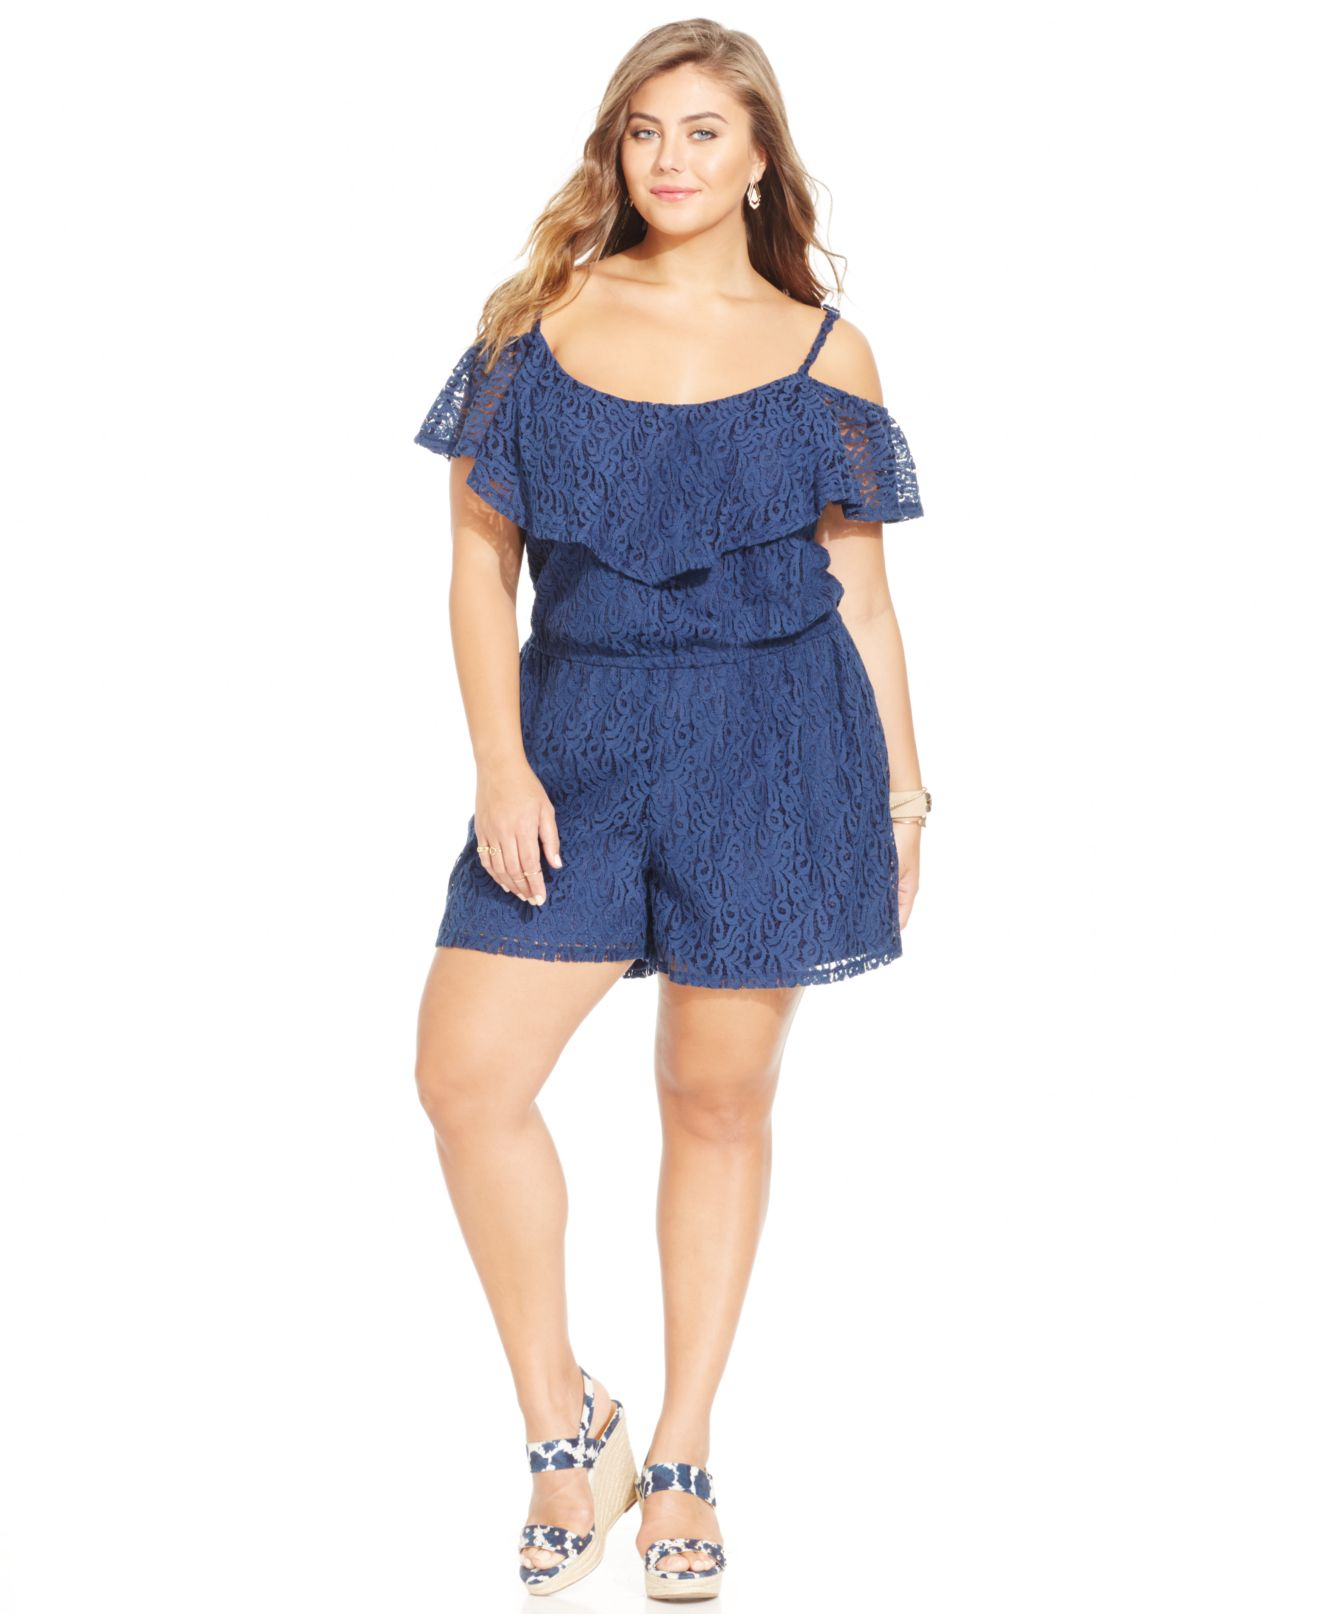 330998803f0 Lyst - Jessica Simpson Plus Size Off-The-Shoulder Lace Romper in Blue